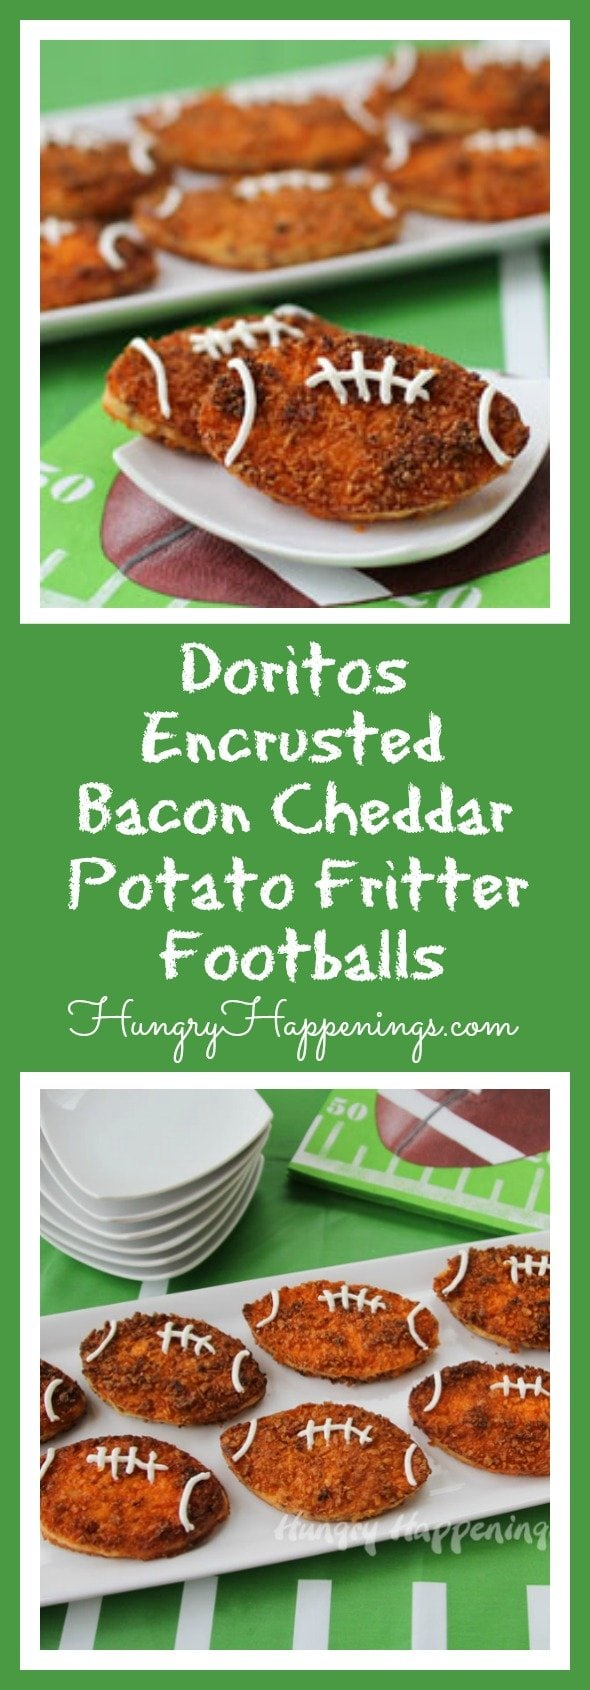 Cheese, Cheese, and more Cheese. That's what I like to hear when I come to a Super Bowl Party and these Doritos Encrusted Bacon Cheddar Potato Fritter Footballs will satisfy your every salty need.